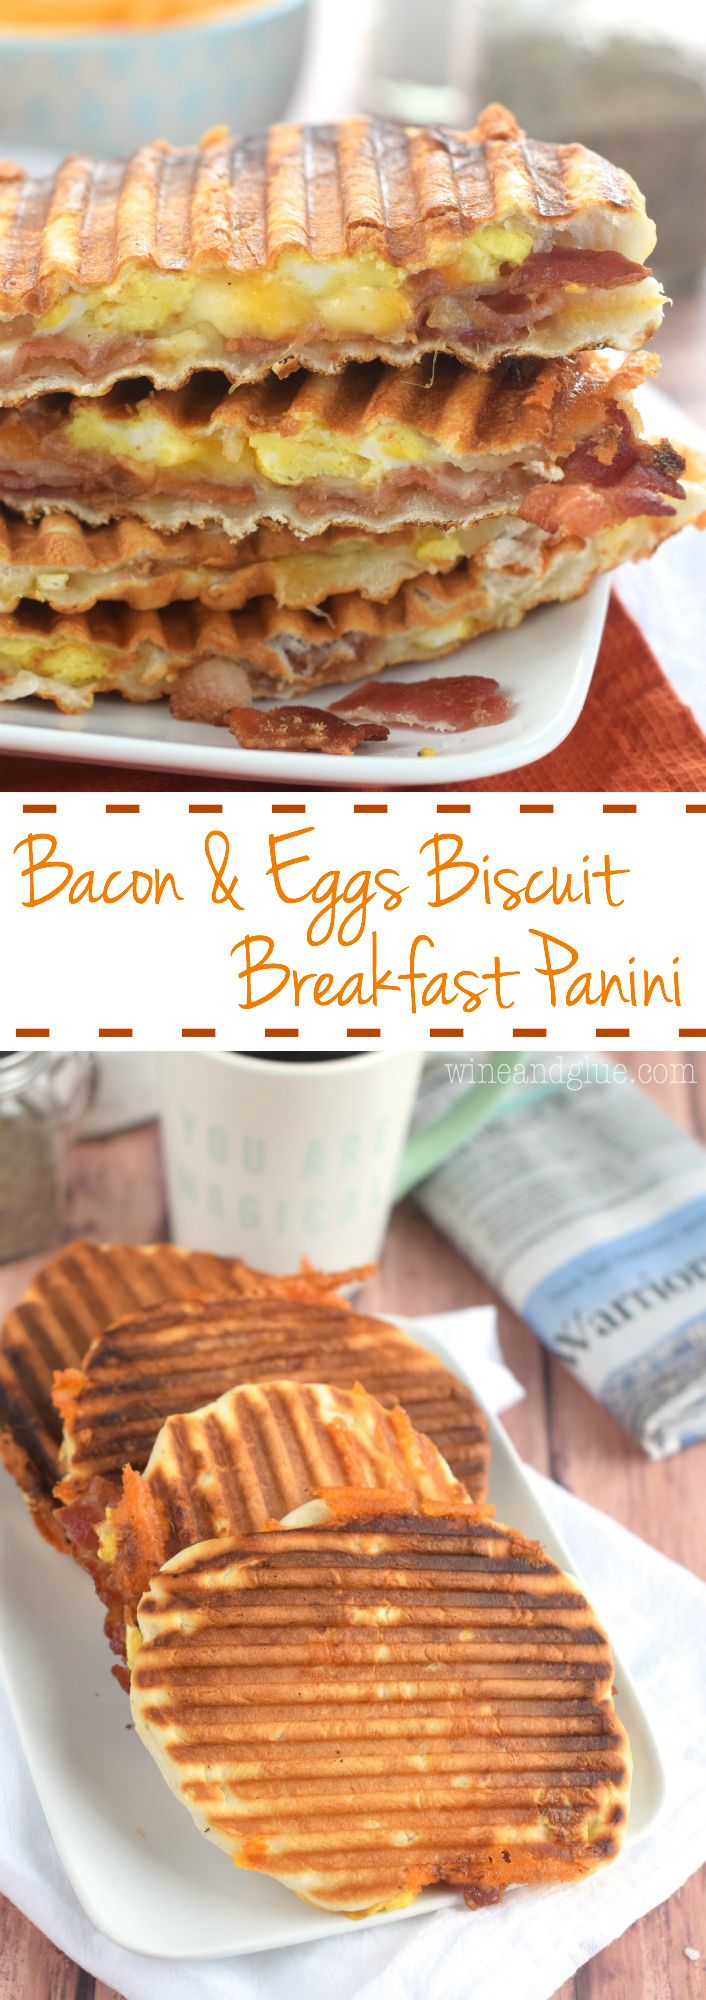 This Bacon and Eggs Biscuit Breakfast Panini is FOUR ingredients, and and all but the last two steps can be done ahead of time making it a fast breakfast! Also works in a George Foreman Grill!